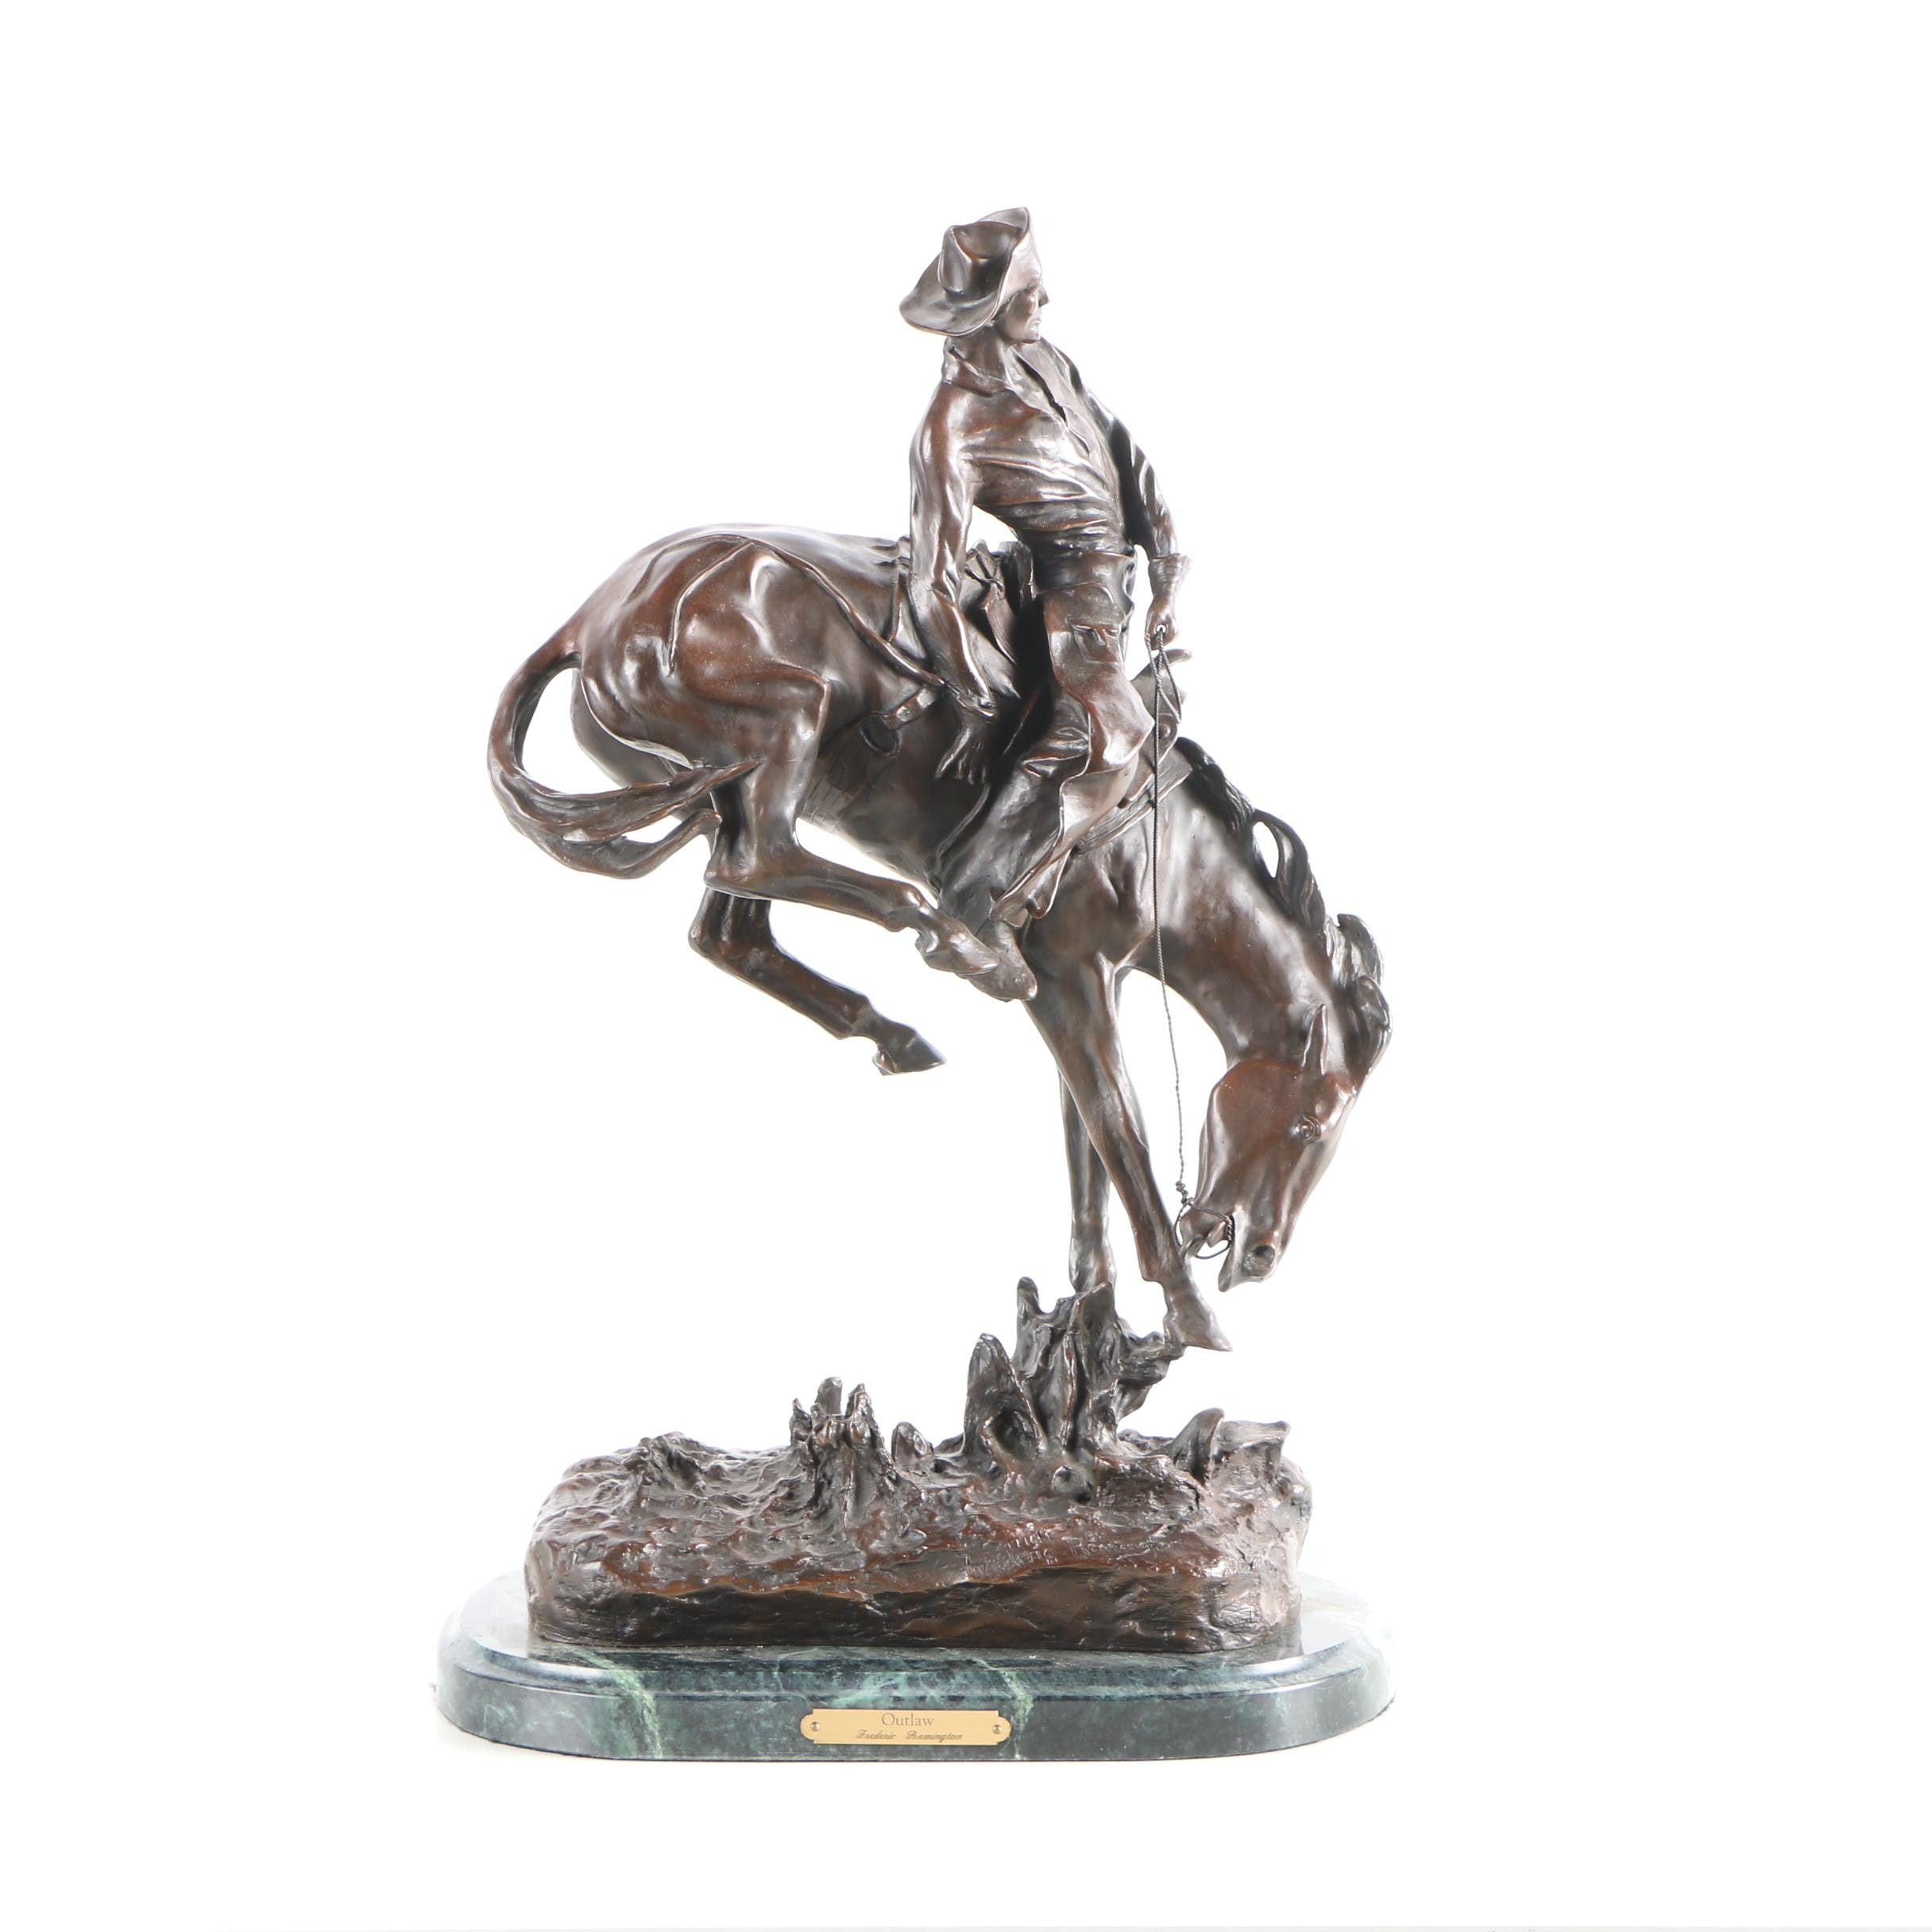 "Copper and Iron Alloy Sculpture After Frederic Remington ""Outlaw"""